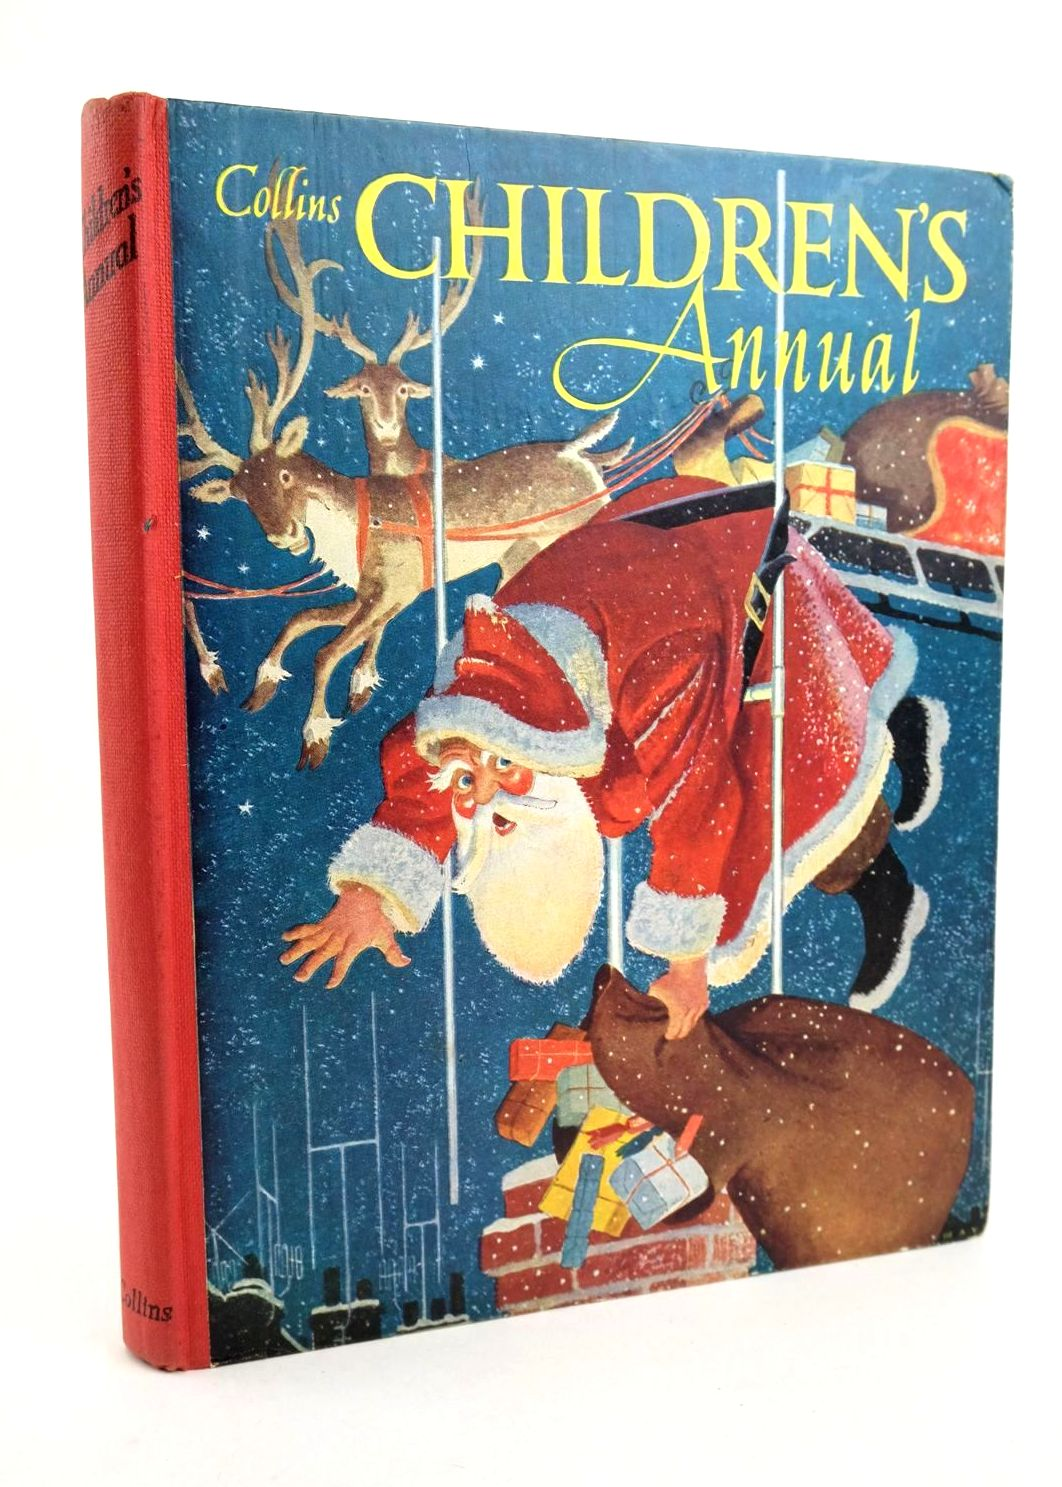 Photo of COLLINS CHILDREN'S ANNUAL written by Boyd, Edward Shaw, Jane Blyton, Enid et al,  illustrated by Boswell, Hilda Helps, Racey Heap, Jean Walmsley et al.,  published by Collins (STOCK CODE: 1318935)  for sale by Stella & Rose's Books